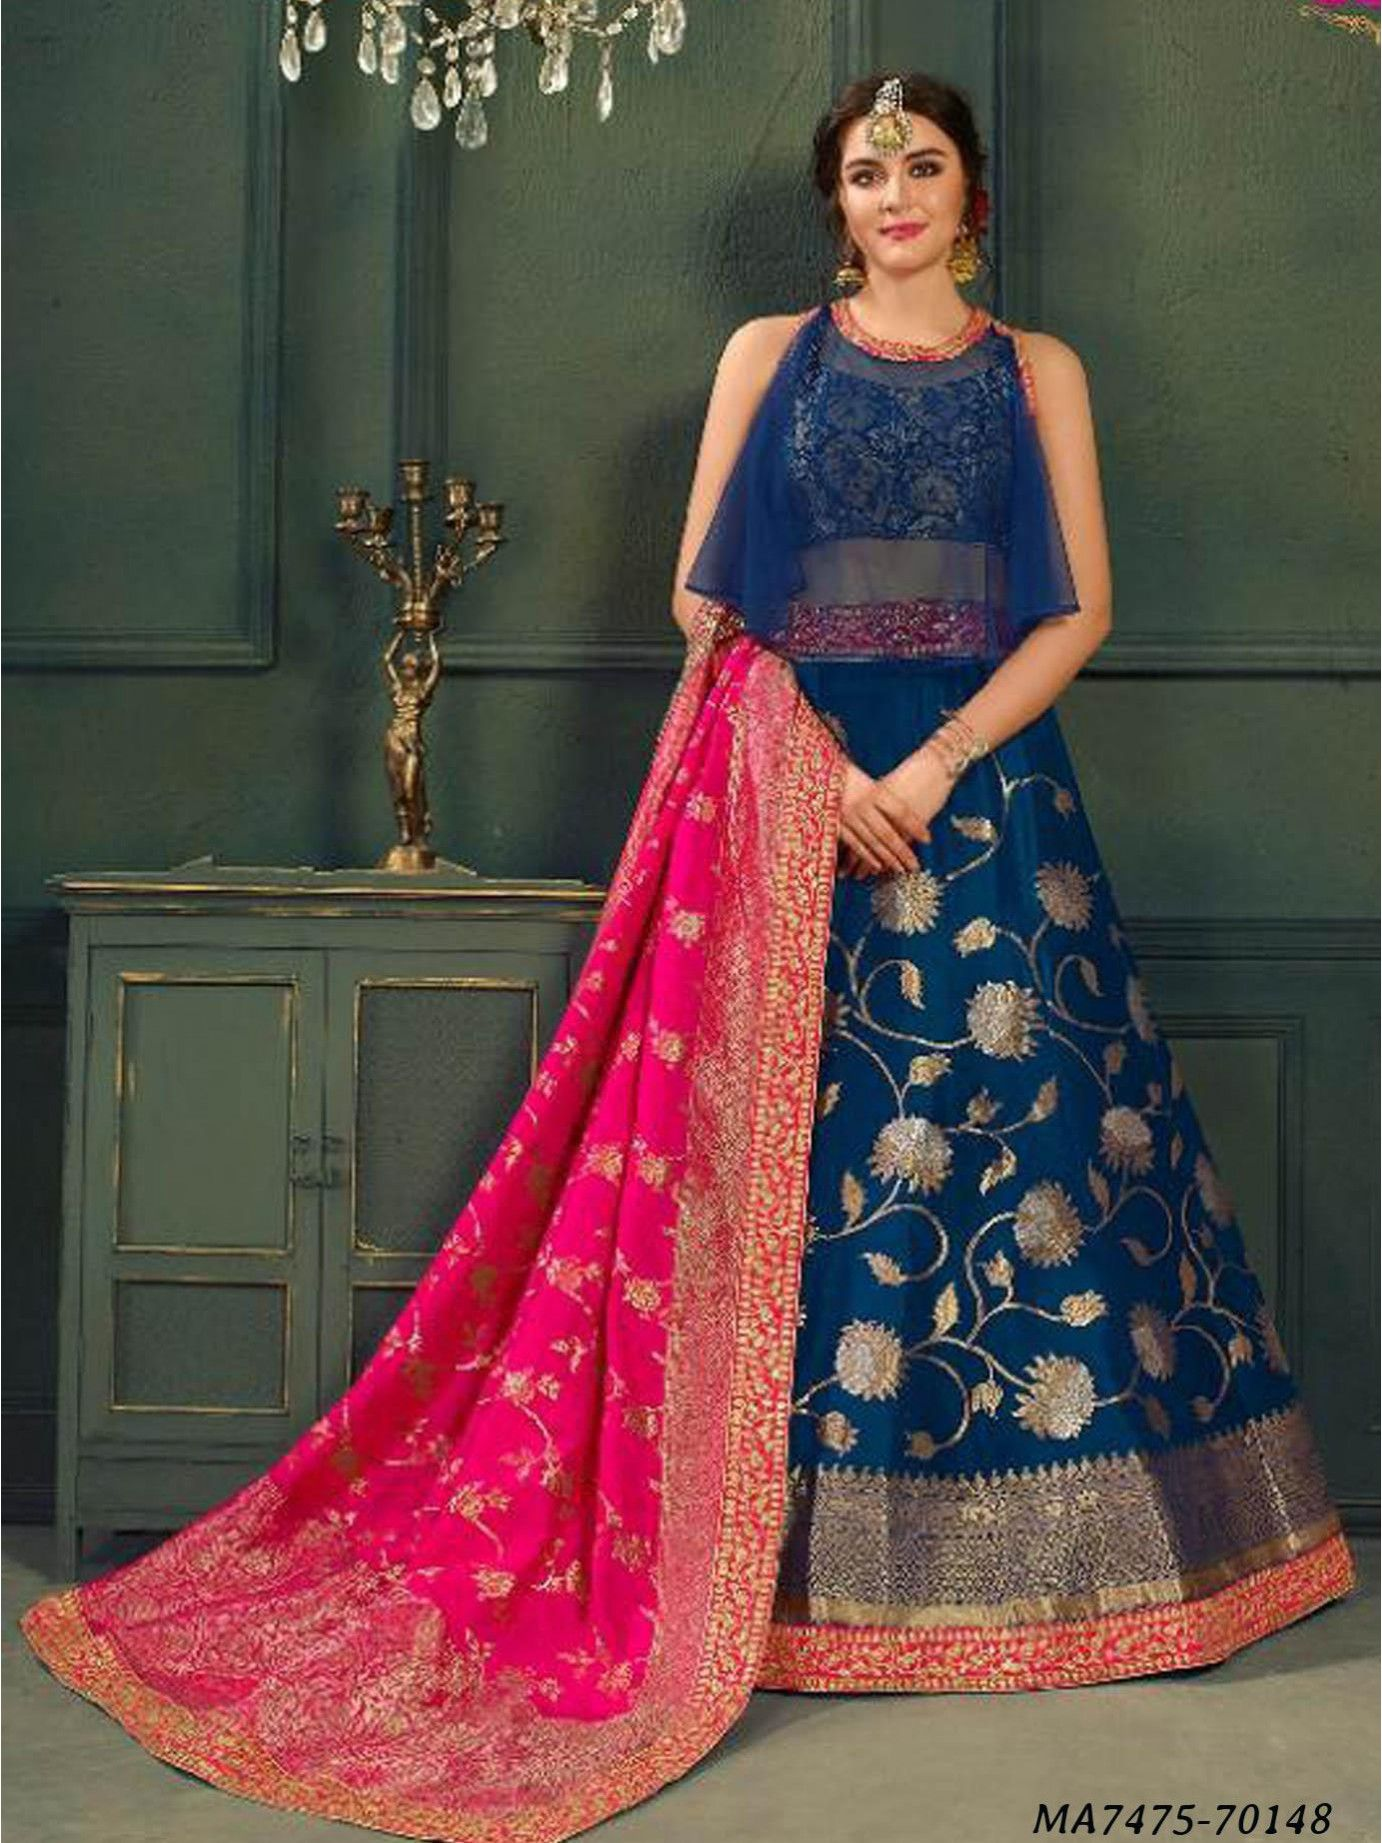 db1071e4626 Shop for  LehengaCholi online sale at attractive prices on GlamourIndianWear